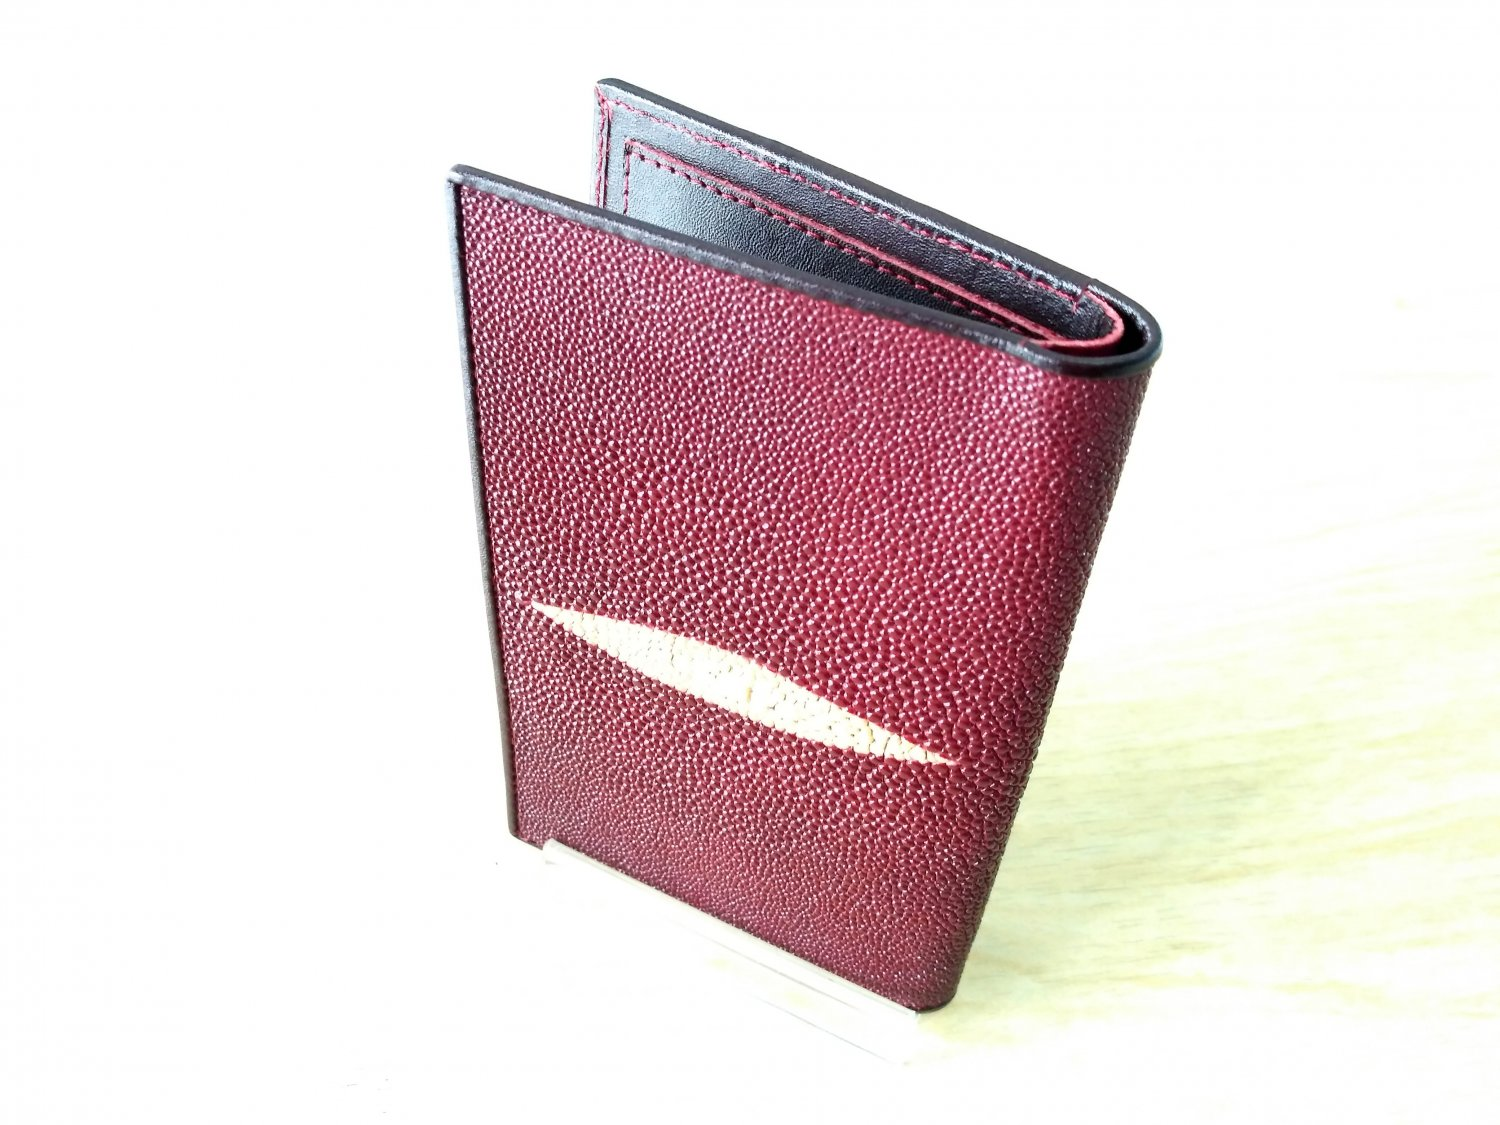 Premium-Men-Wallet-Genuine-Stingray-Leather-Bifold-Wallet-Maroon-Red-Men-Purse